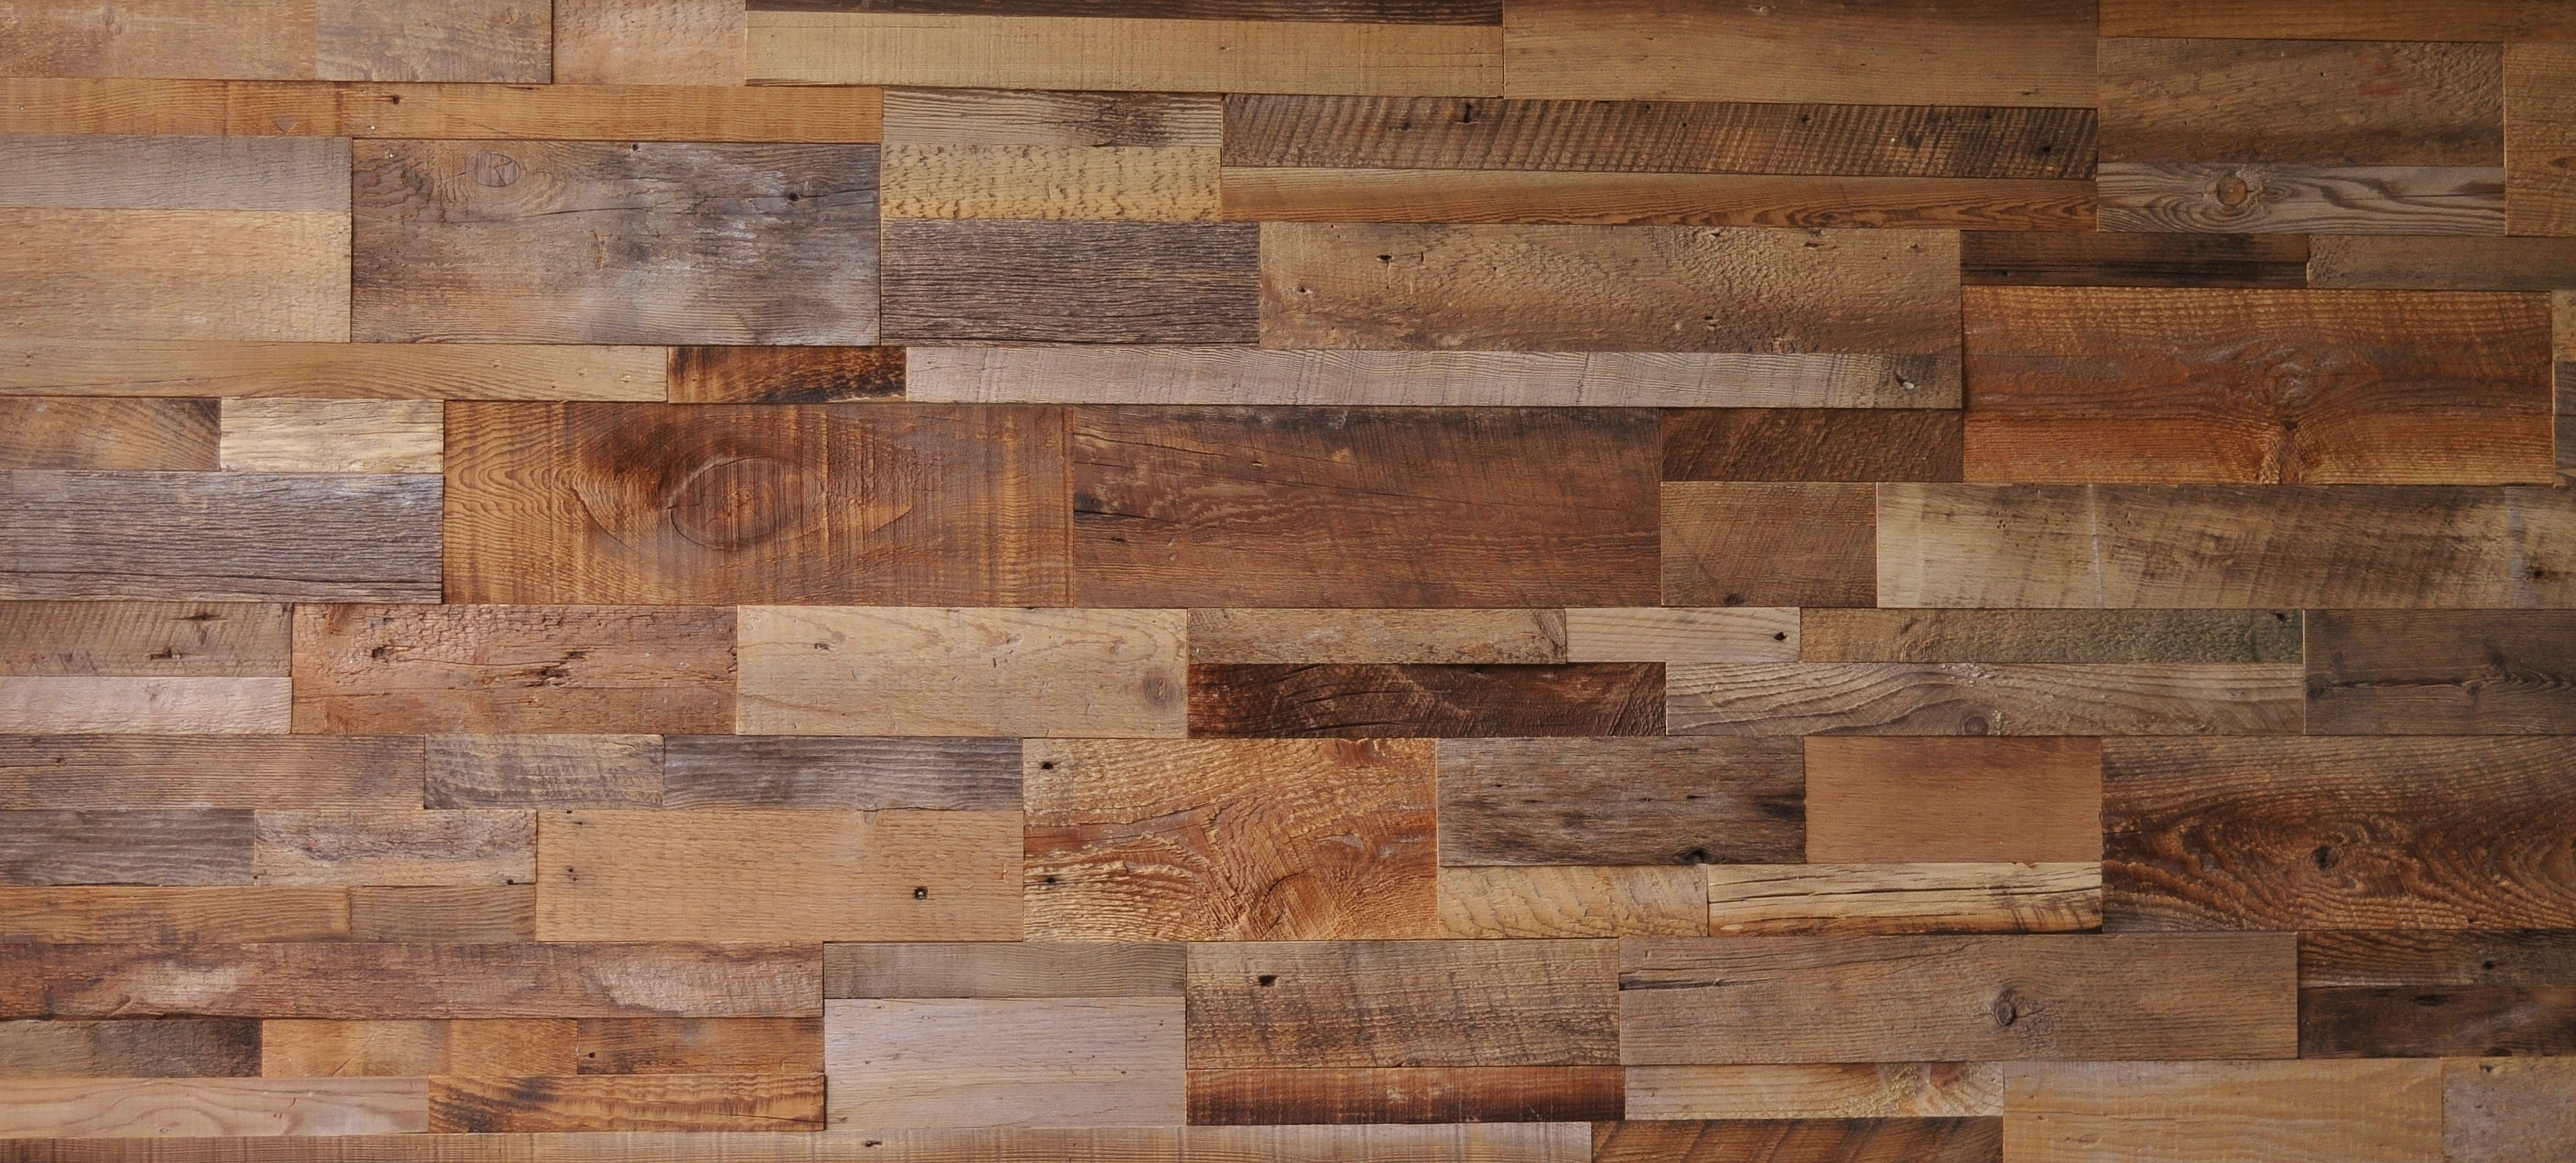 Diy reclaimed barn wood accent wall brown natural mixed for Wood wallpaper for walls